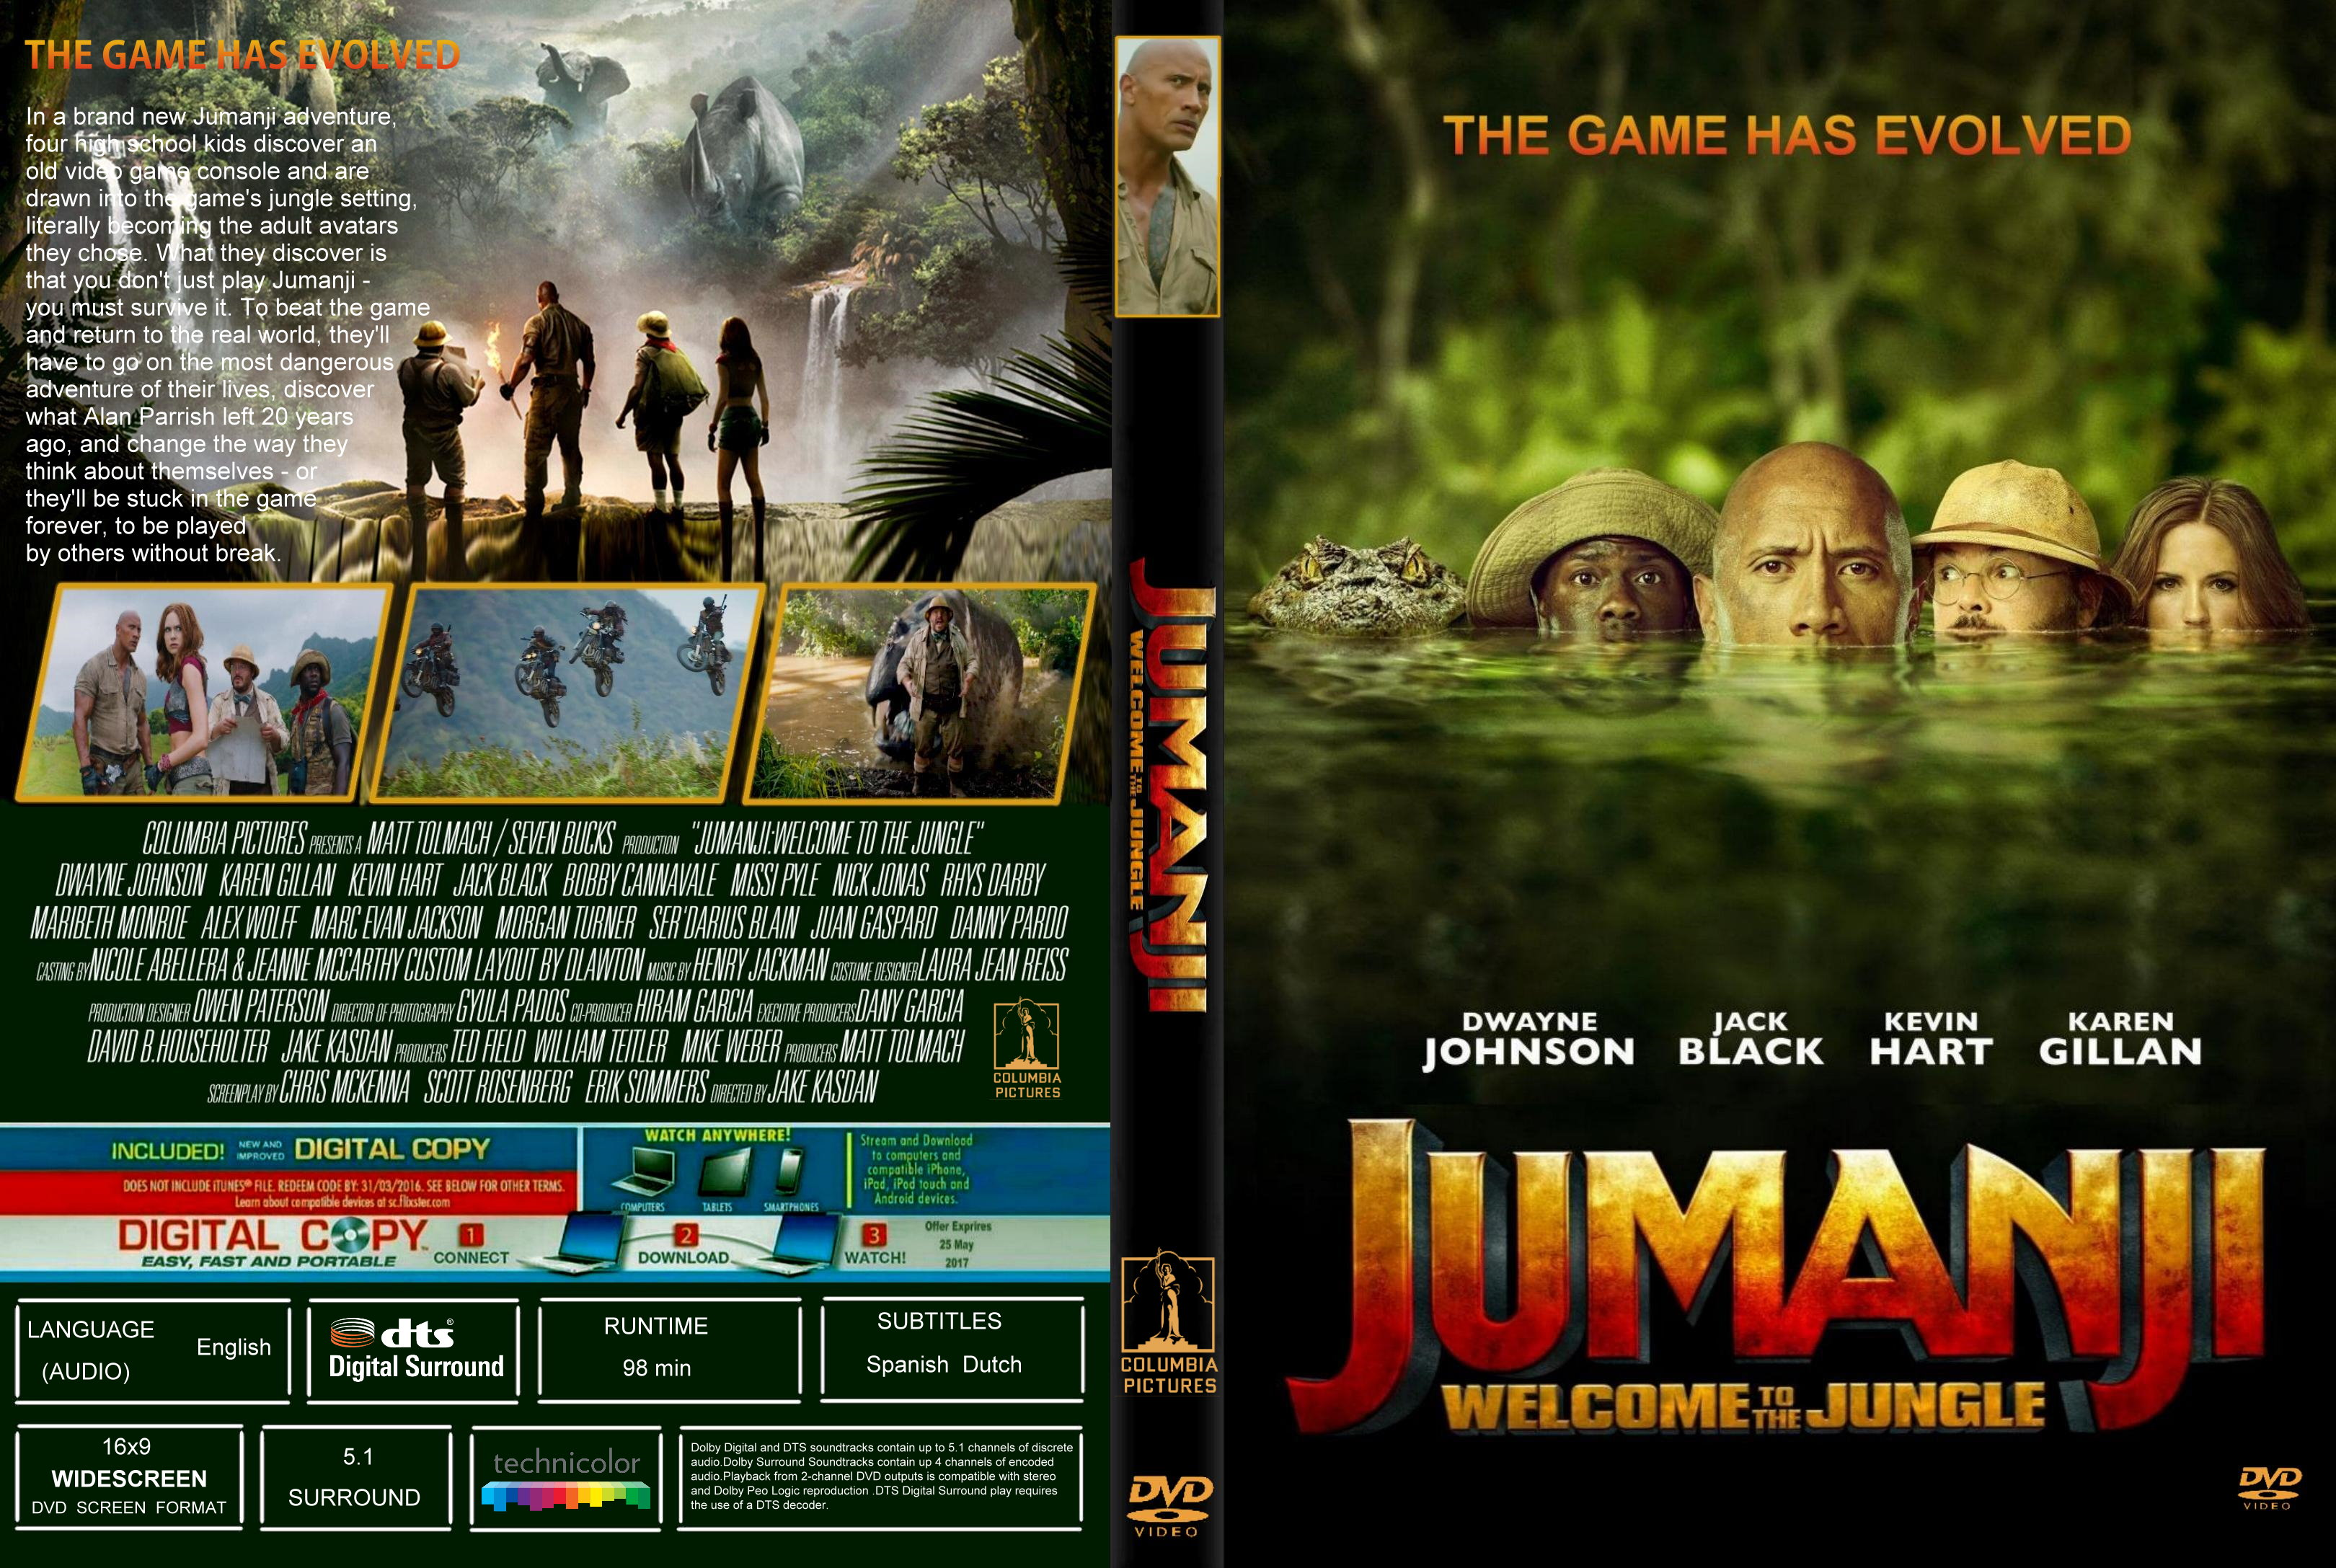 Jumanji Welcome To The Jungle 2017 Front Dvd Covers Cover Century Over 500 000 Album Art Covers For Free